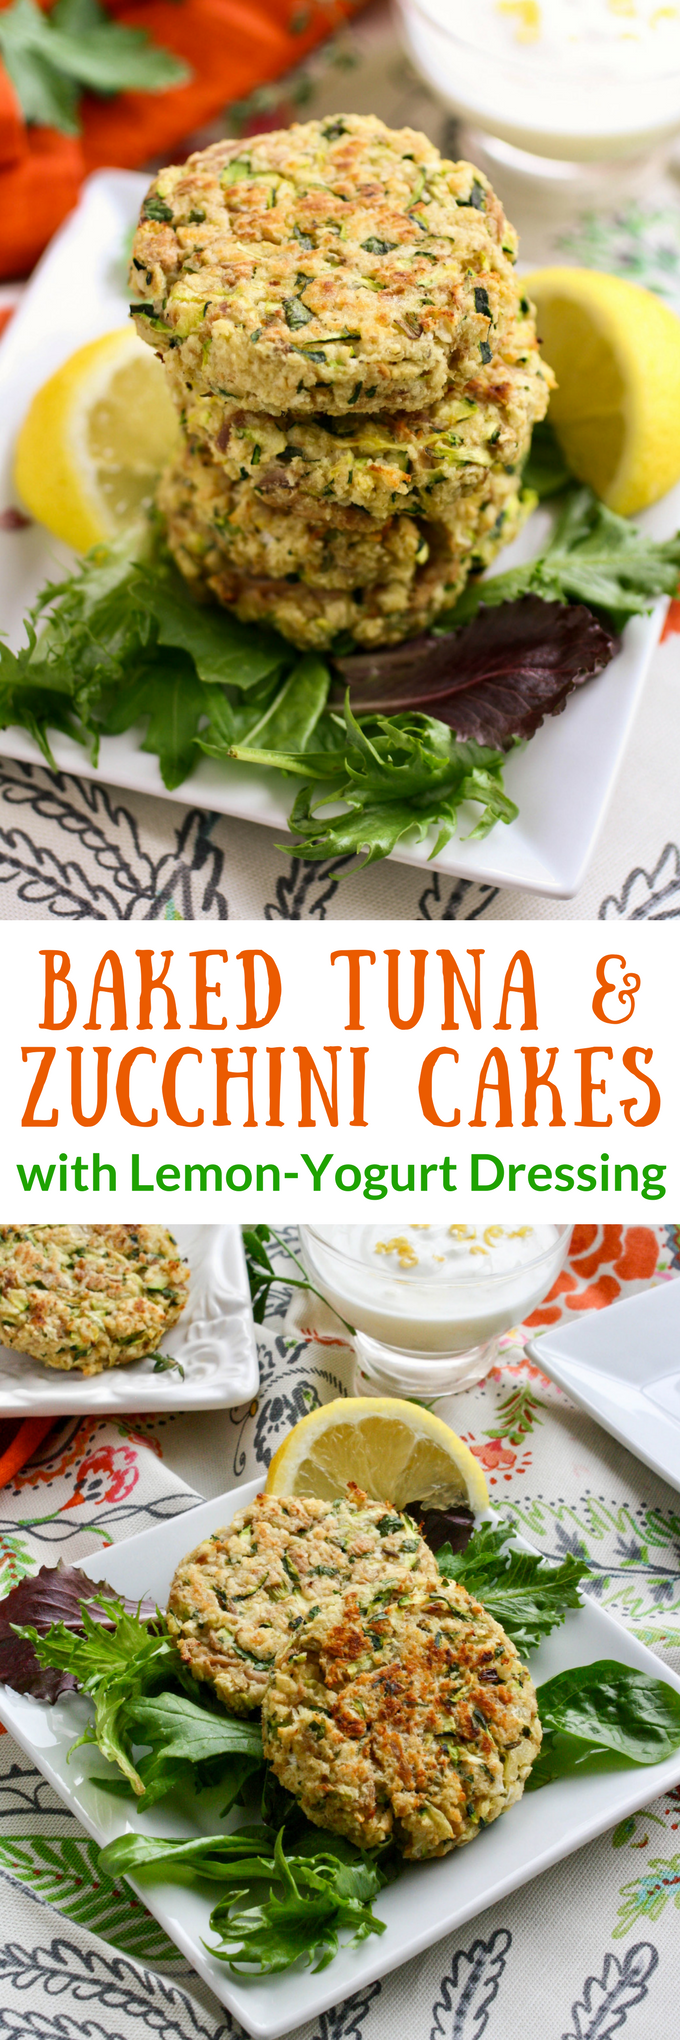 Baked Tuna and Zucchini Cakes with Lemon-Yogurt Dressing are big on flavor and fab ingredinets! You'll love them as part of a lighter meal.